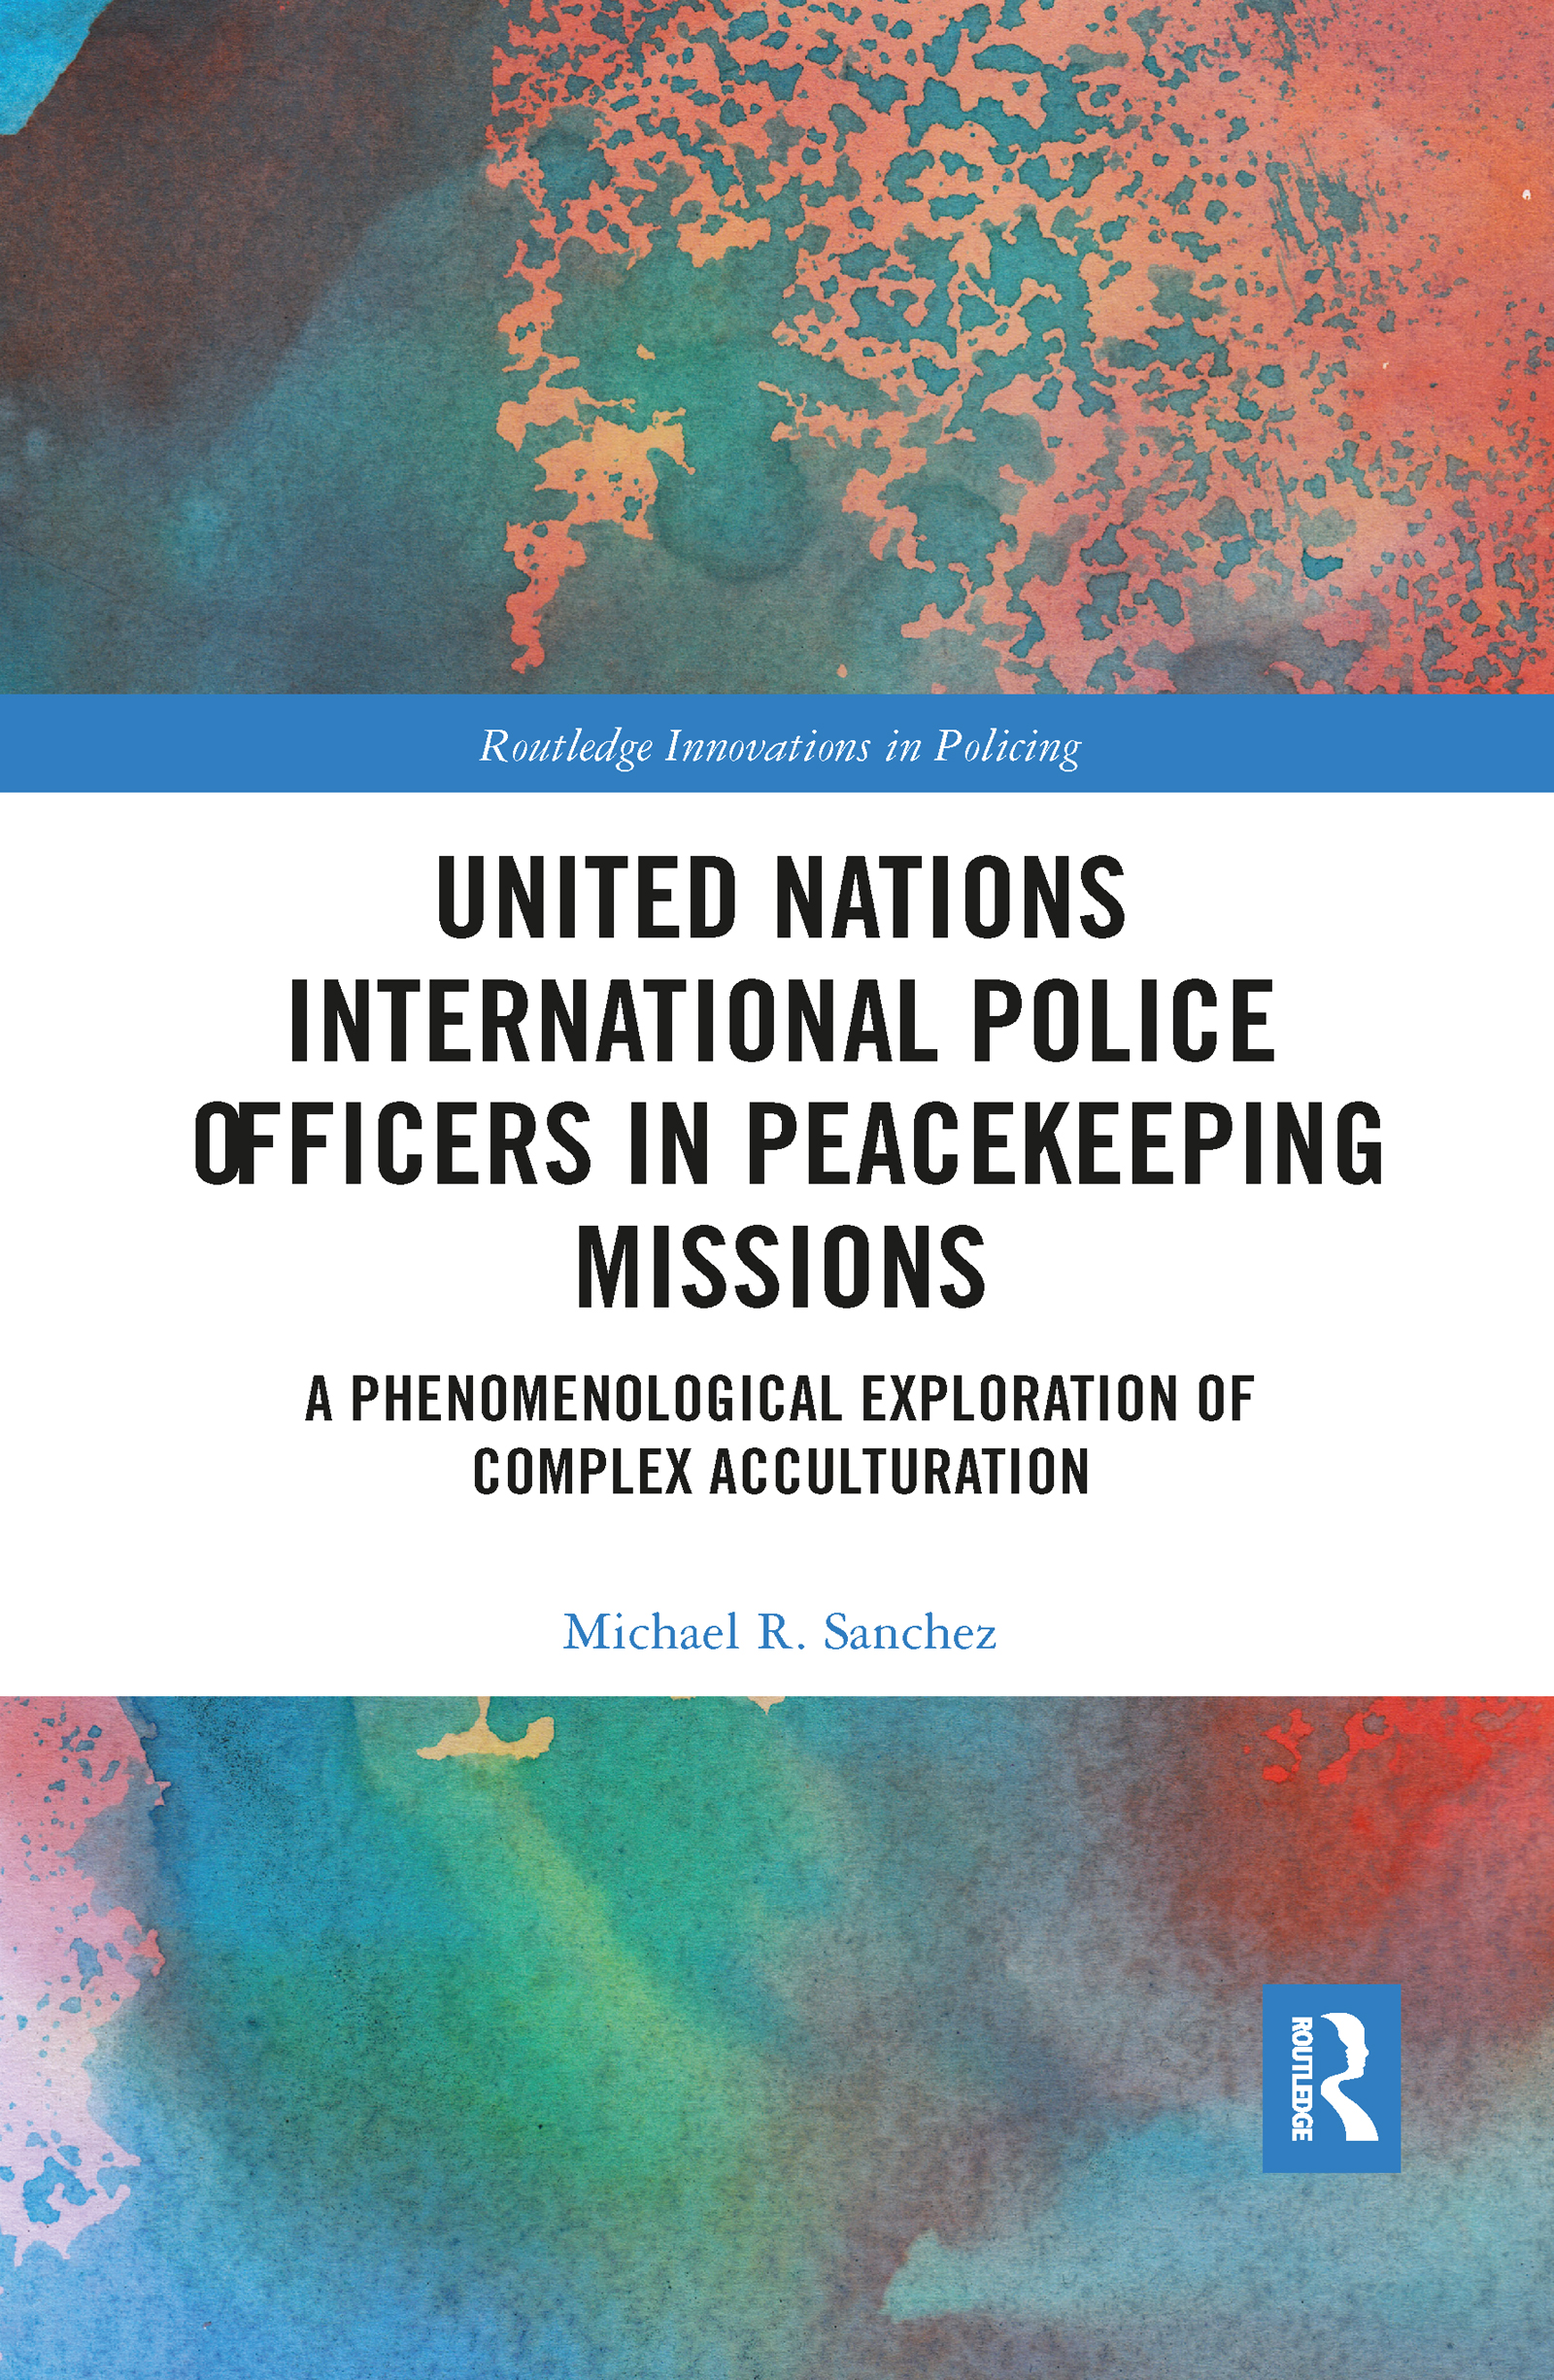 United Nations International Police Officers in Peacekeeping Missions